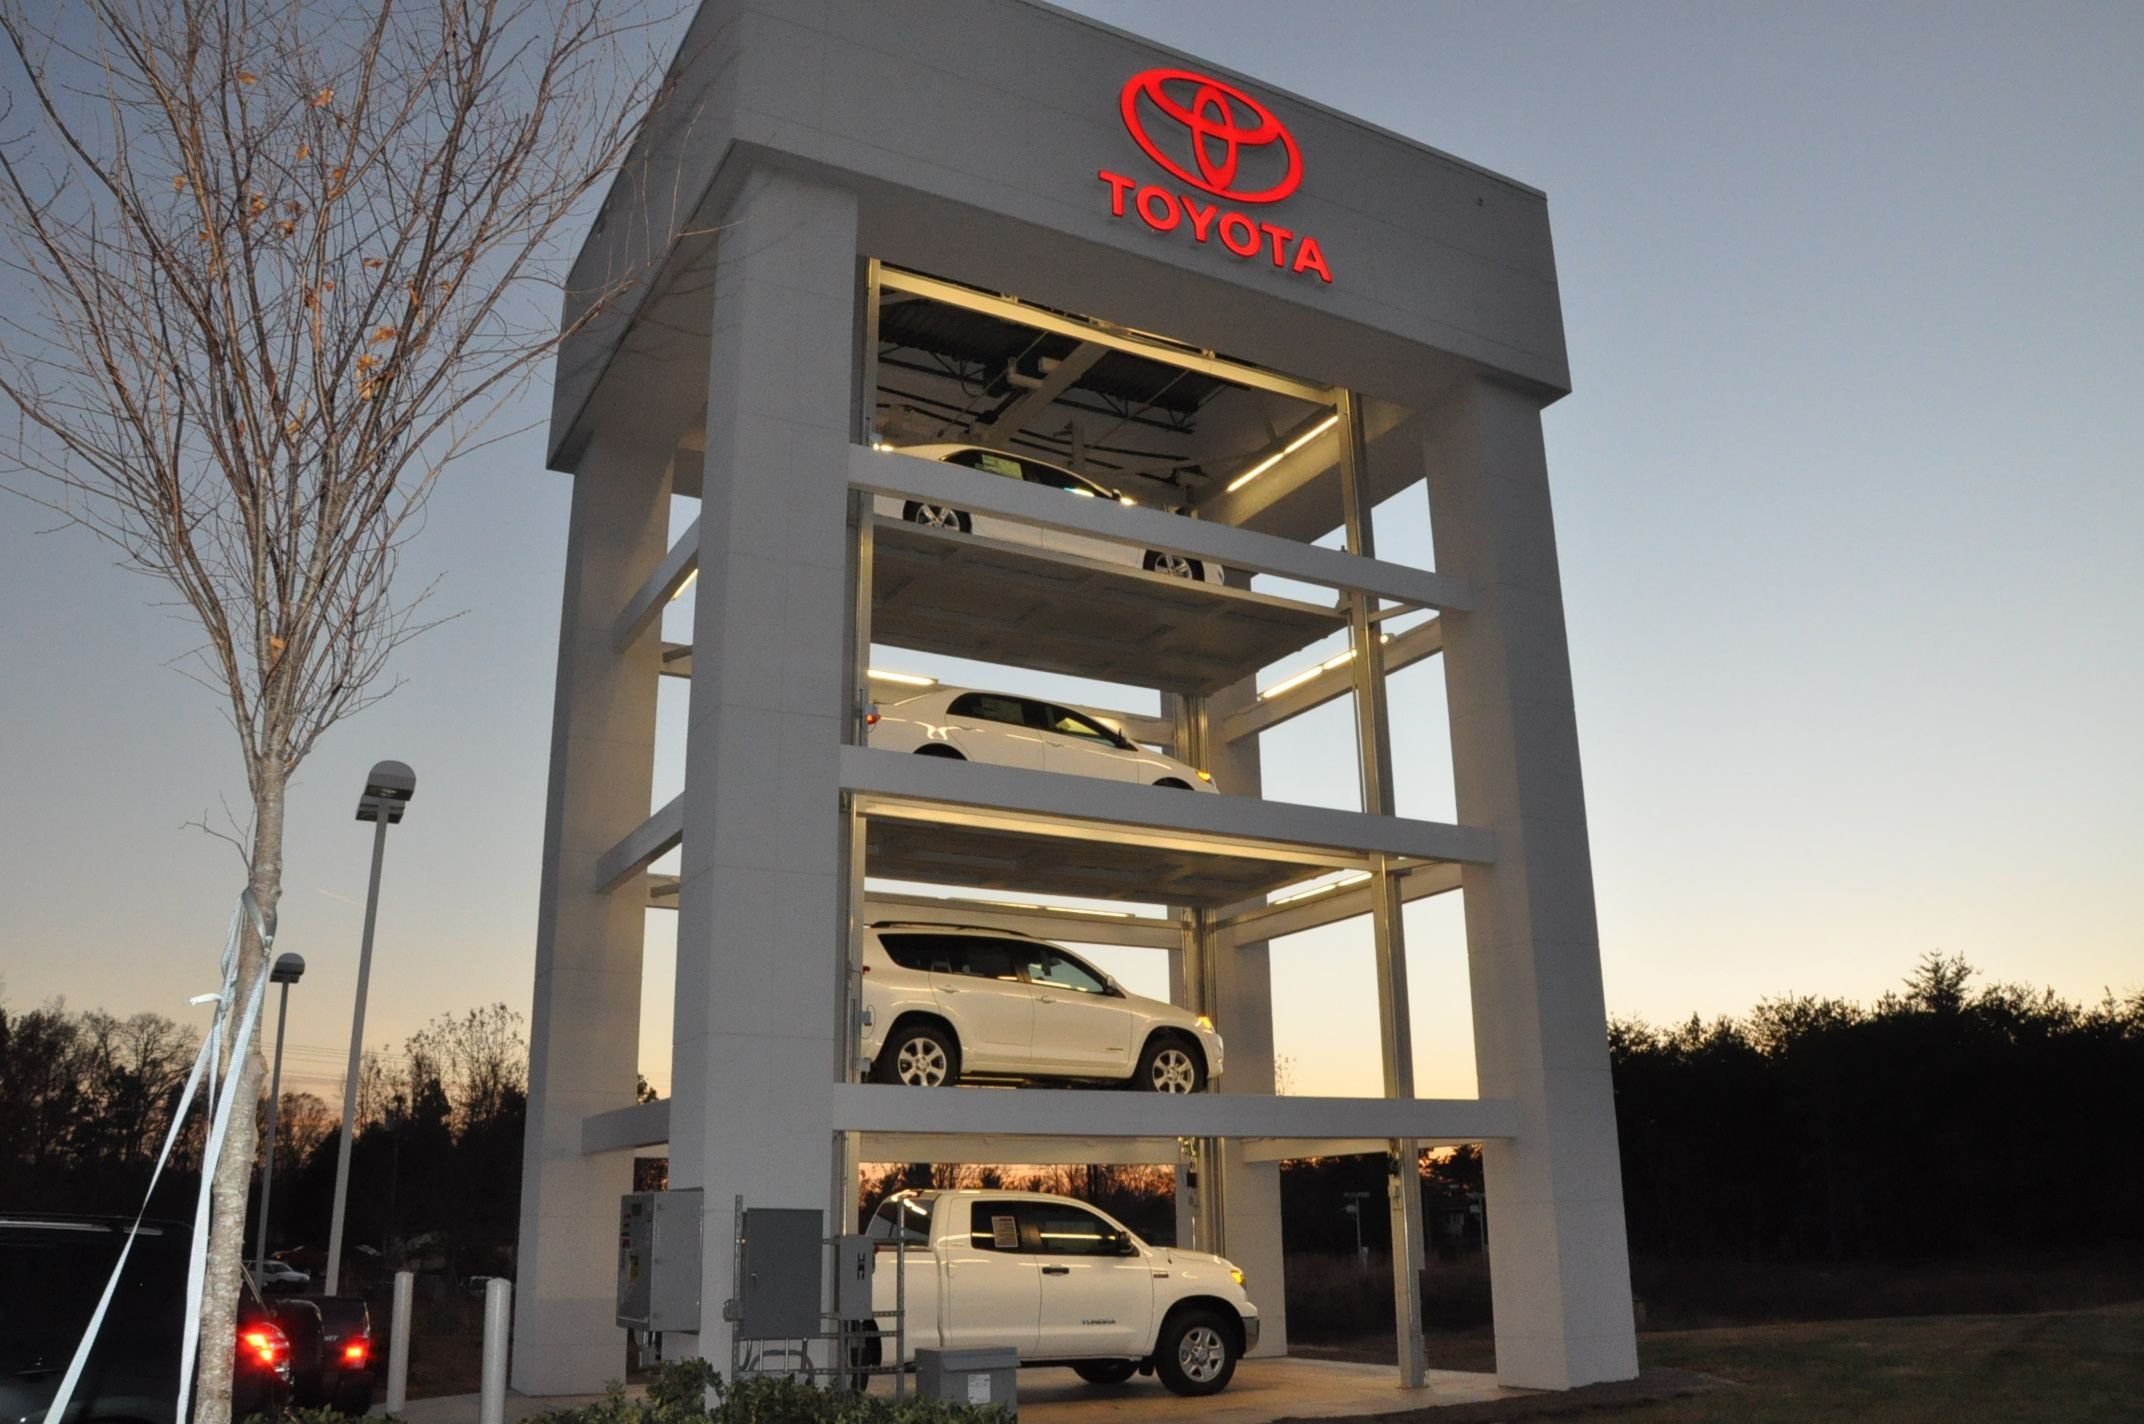 Amazing A Recent Car Tower Picture. Rememberu2026Before You Buy, Give Mike A Try! Mike  Johnsonu0027s Hickory Toyota! 435 US Hwy 70 SE Hickory, NC 28602 828 328 5586